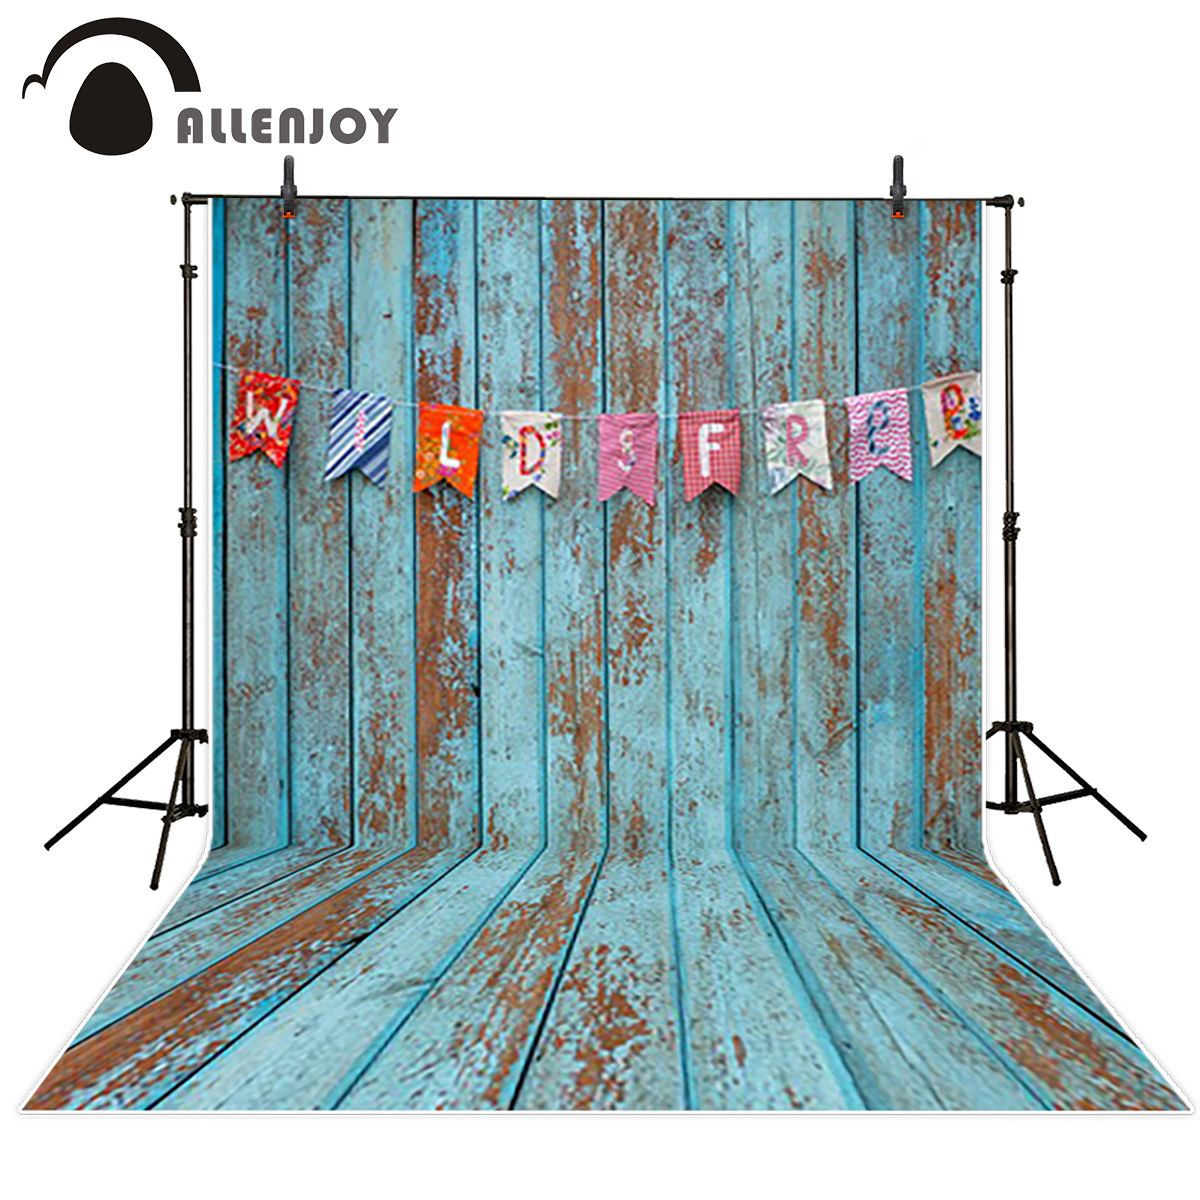 Allenjoy photo background Blue wood board vintage baby photo booth For a photo shoot vinyl backdrops for photography